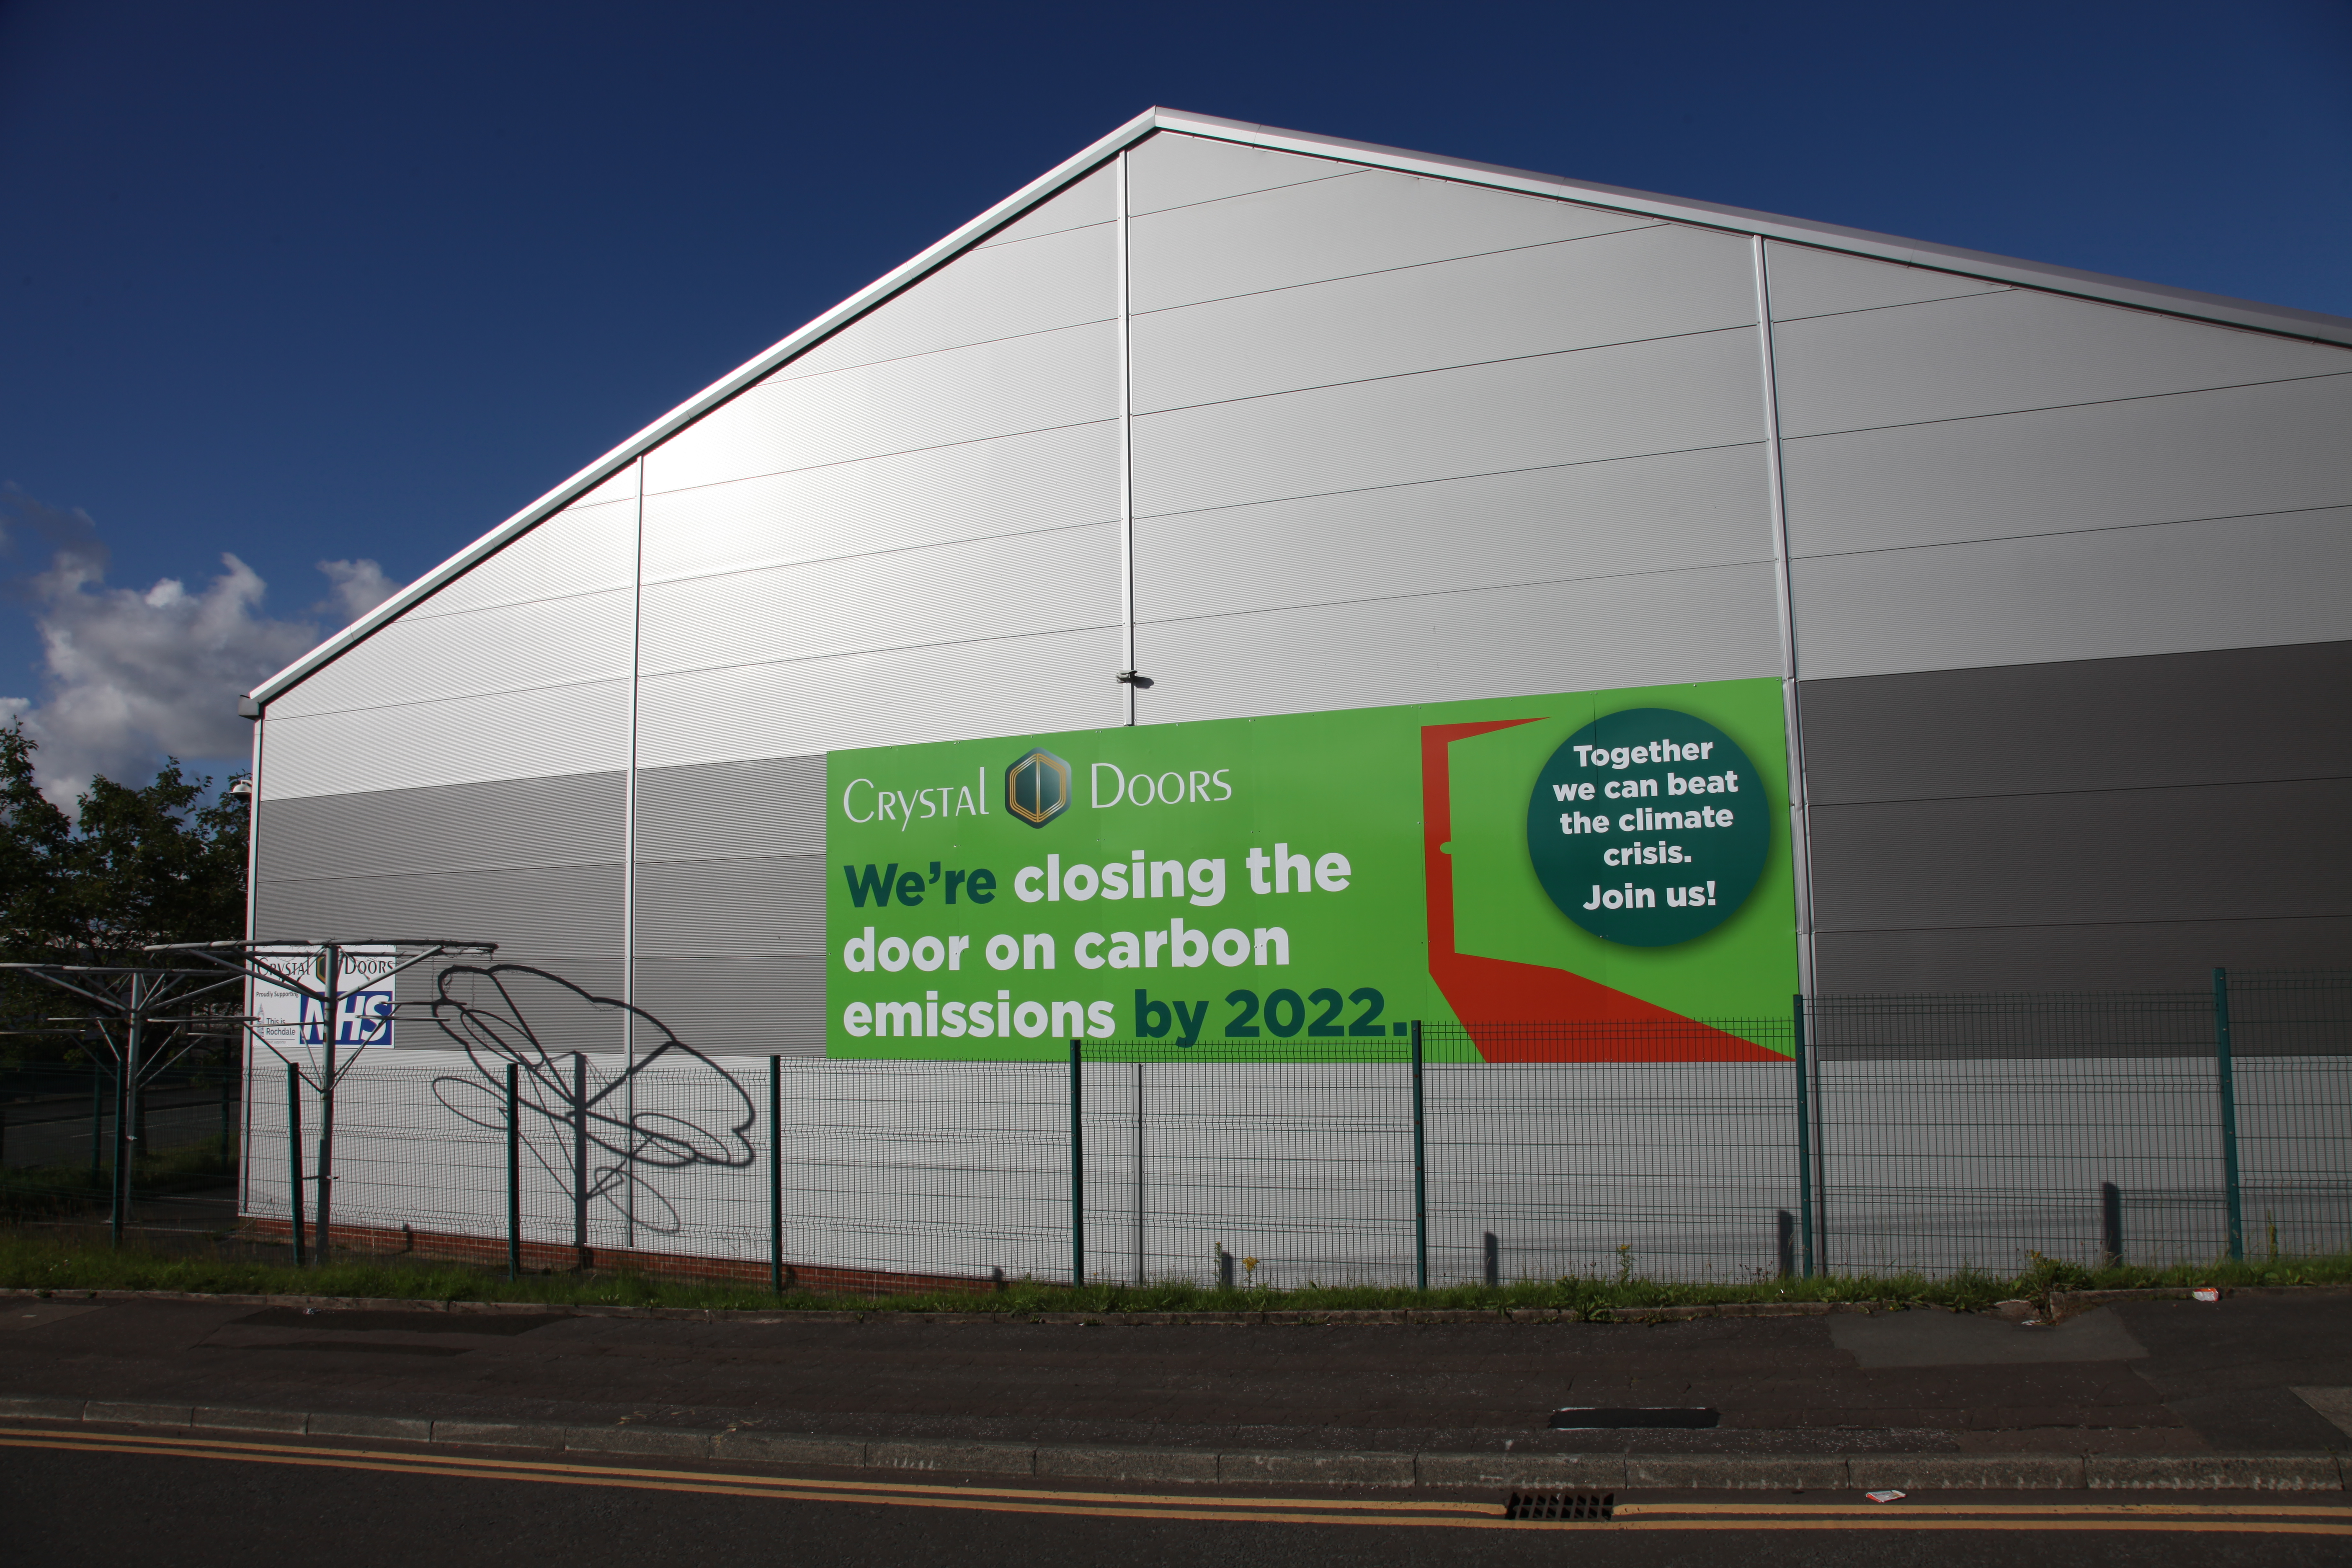 Image: Manufacturer pledges to be carbon neutral by 2022